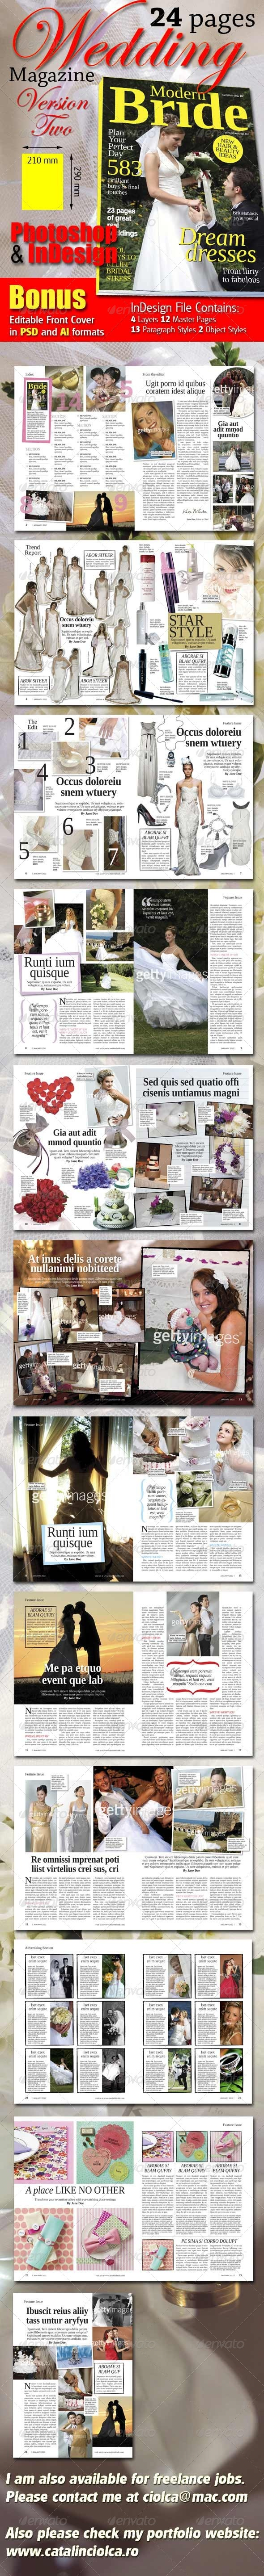 GraphicRiver 24 Pages Wedding Magazine Version Two 1538579